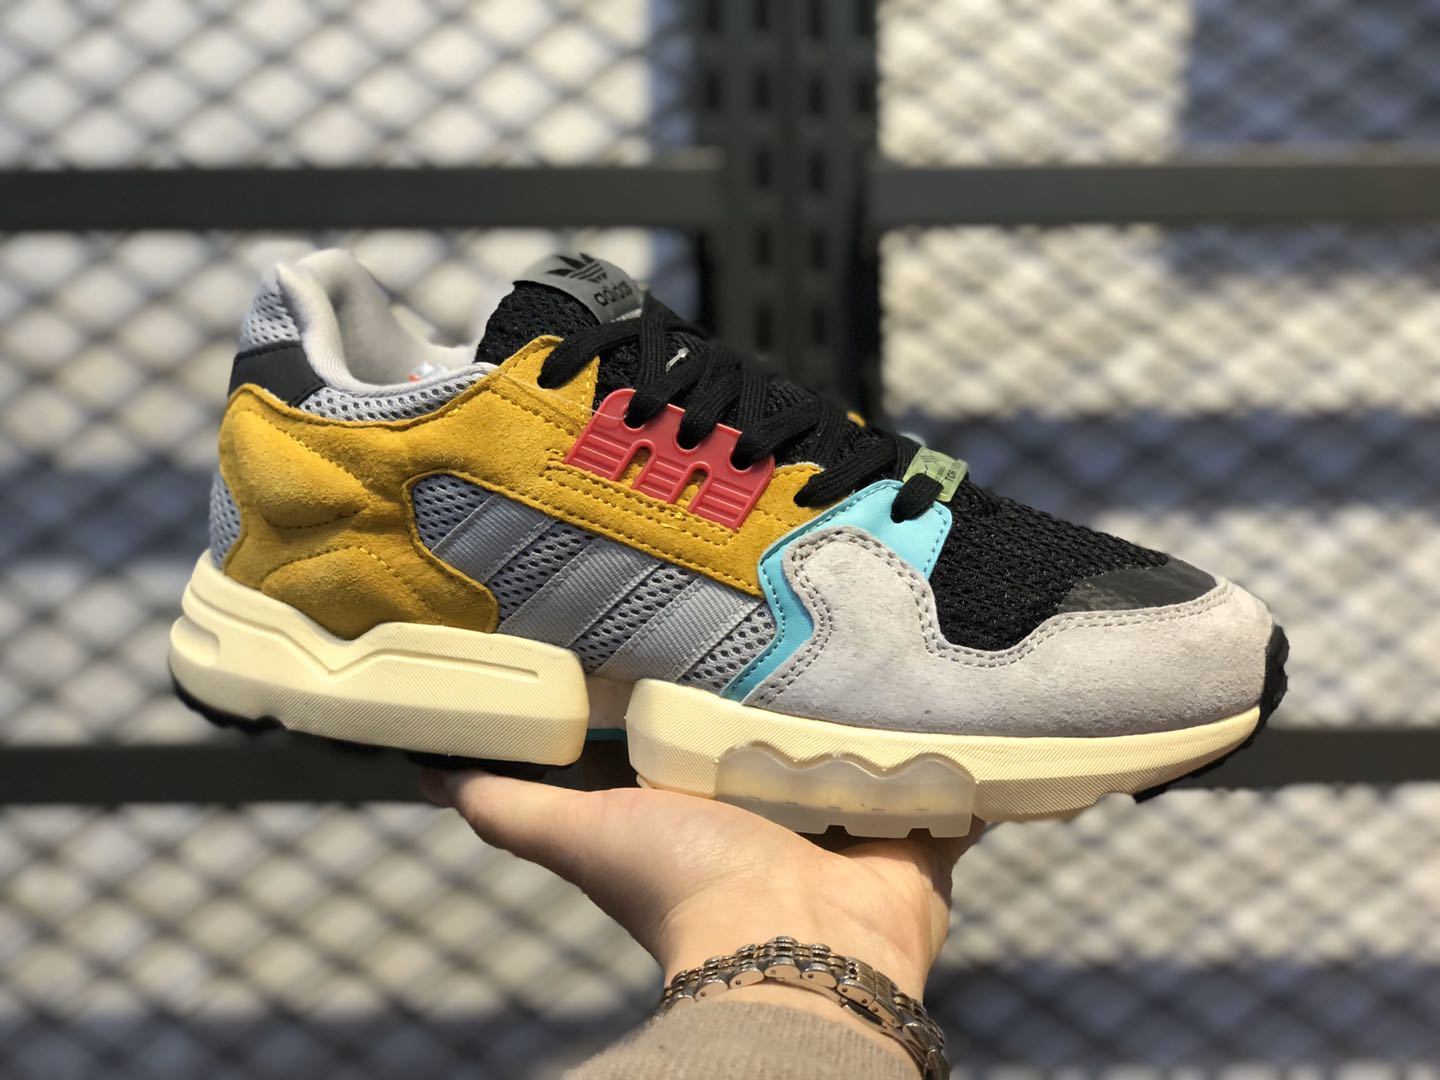 Adidas ZX Torsion Earth Yellow/Core Black-Wolf Grey EE4776